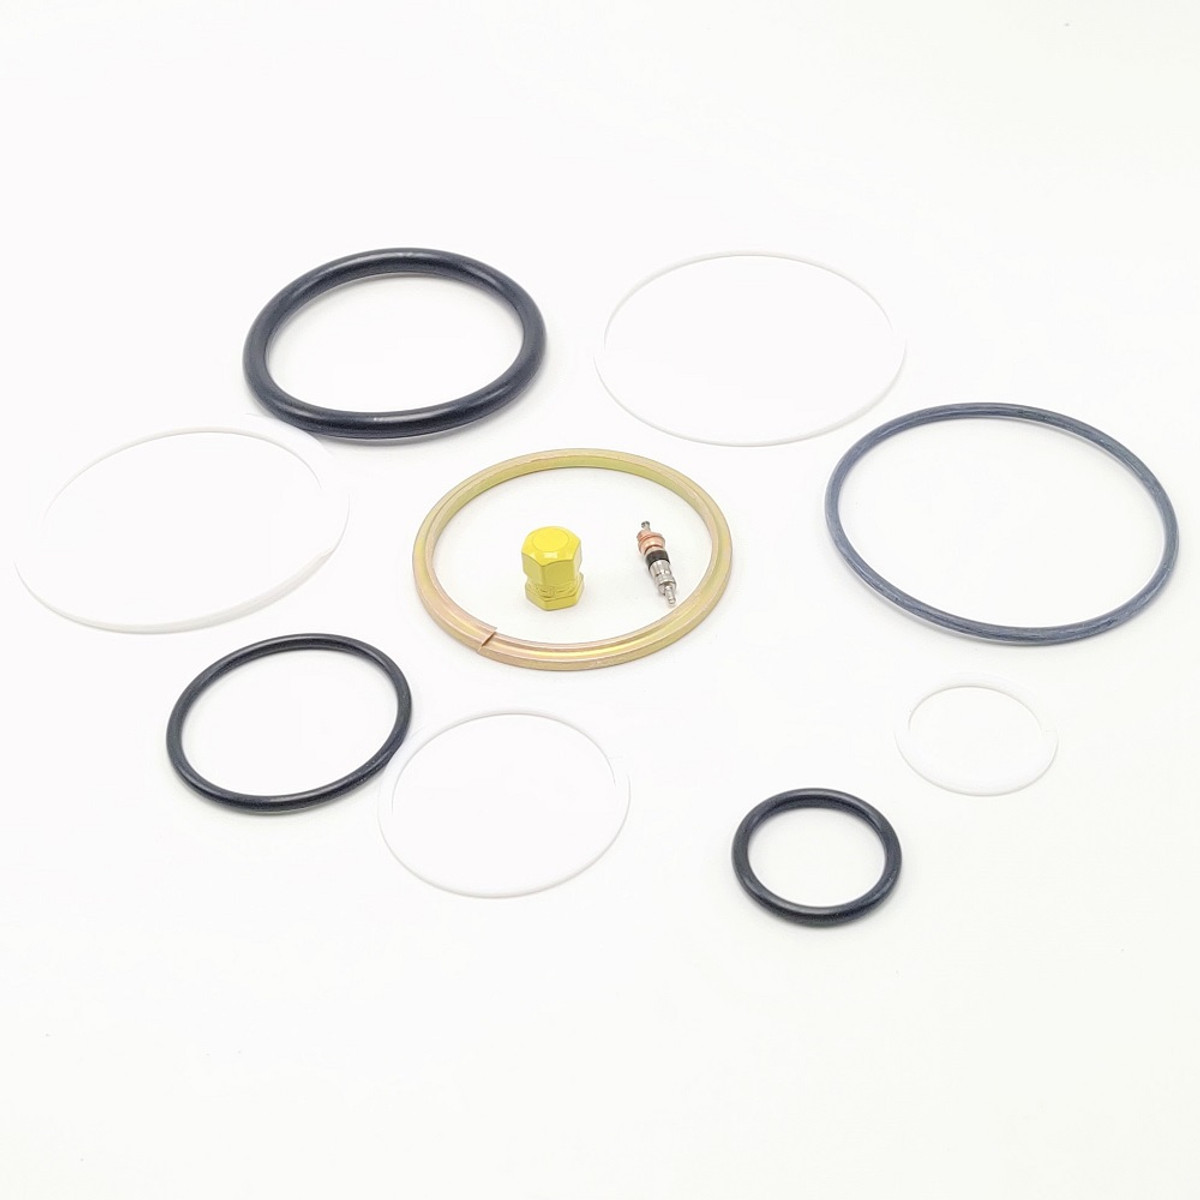 Nose and Main Strut Seal Kit, Mooney M22 Mustang.  104-PPM22MSSK